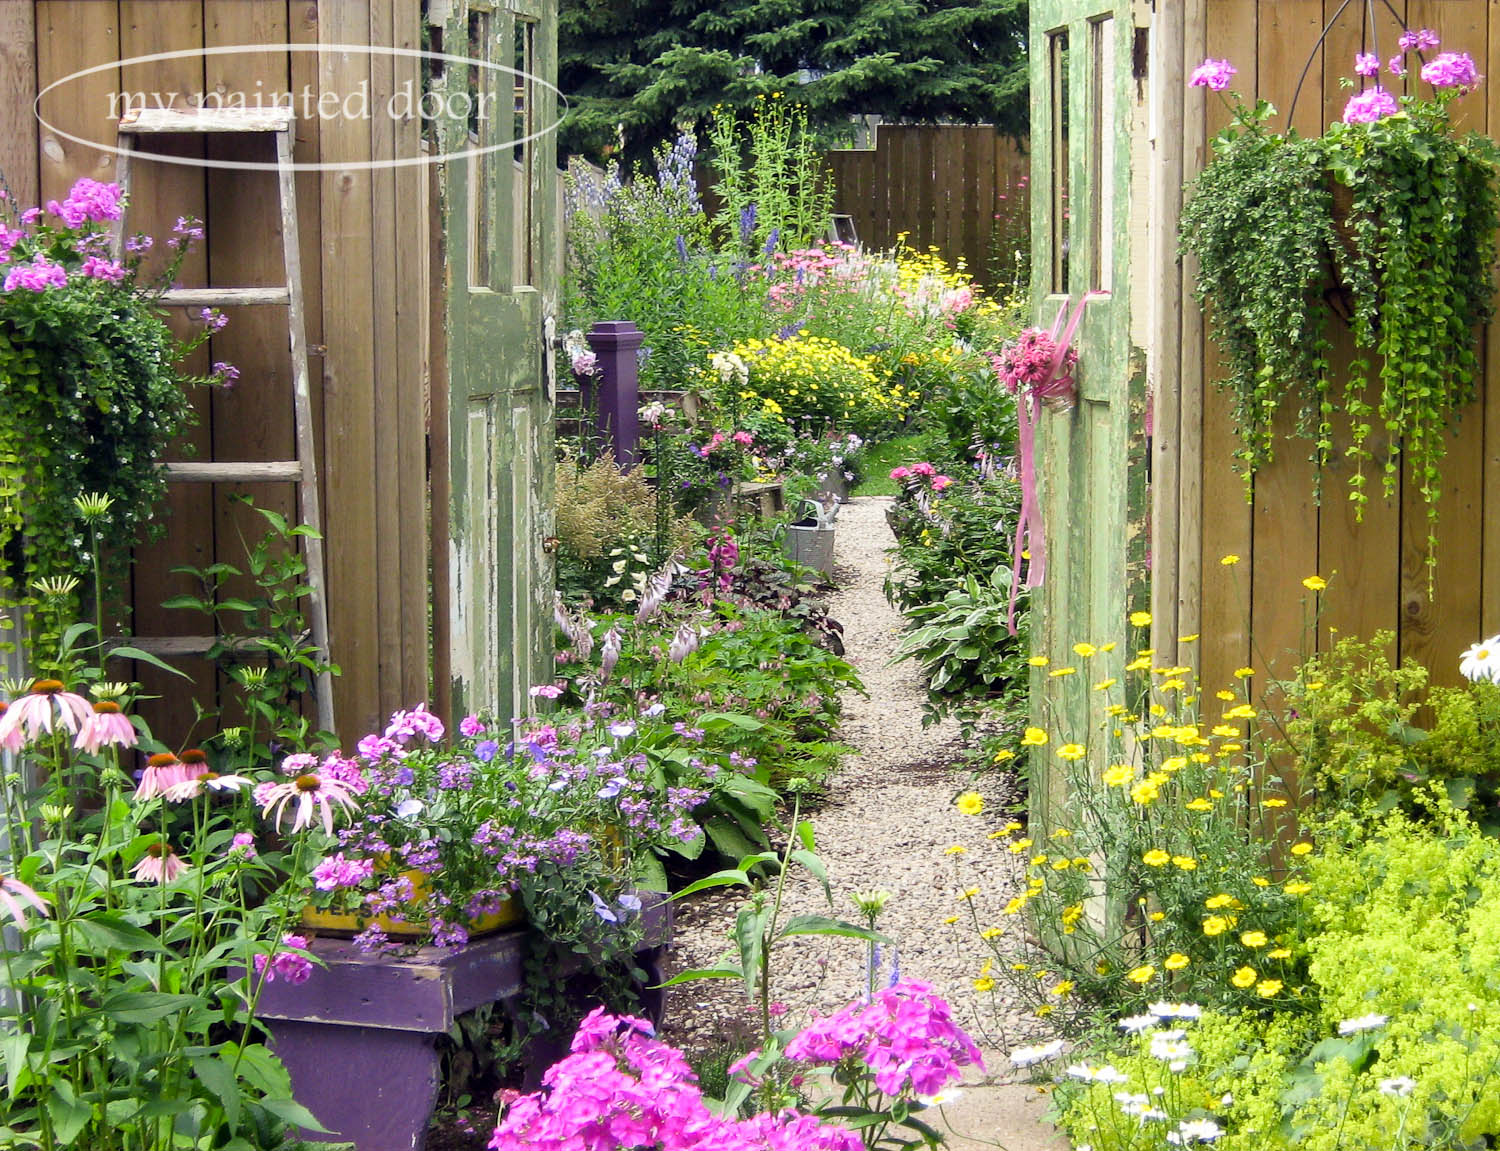 Country Garden of Sue Sikorski is featured on Better Homes and Garden Website.